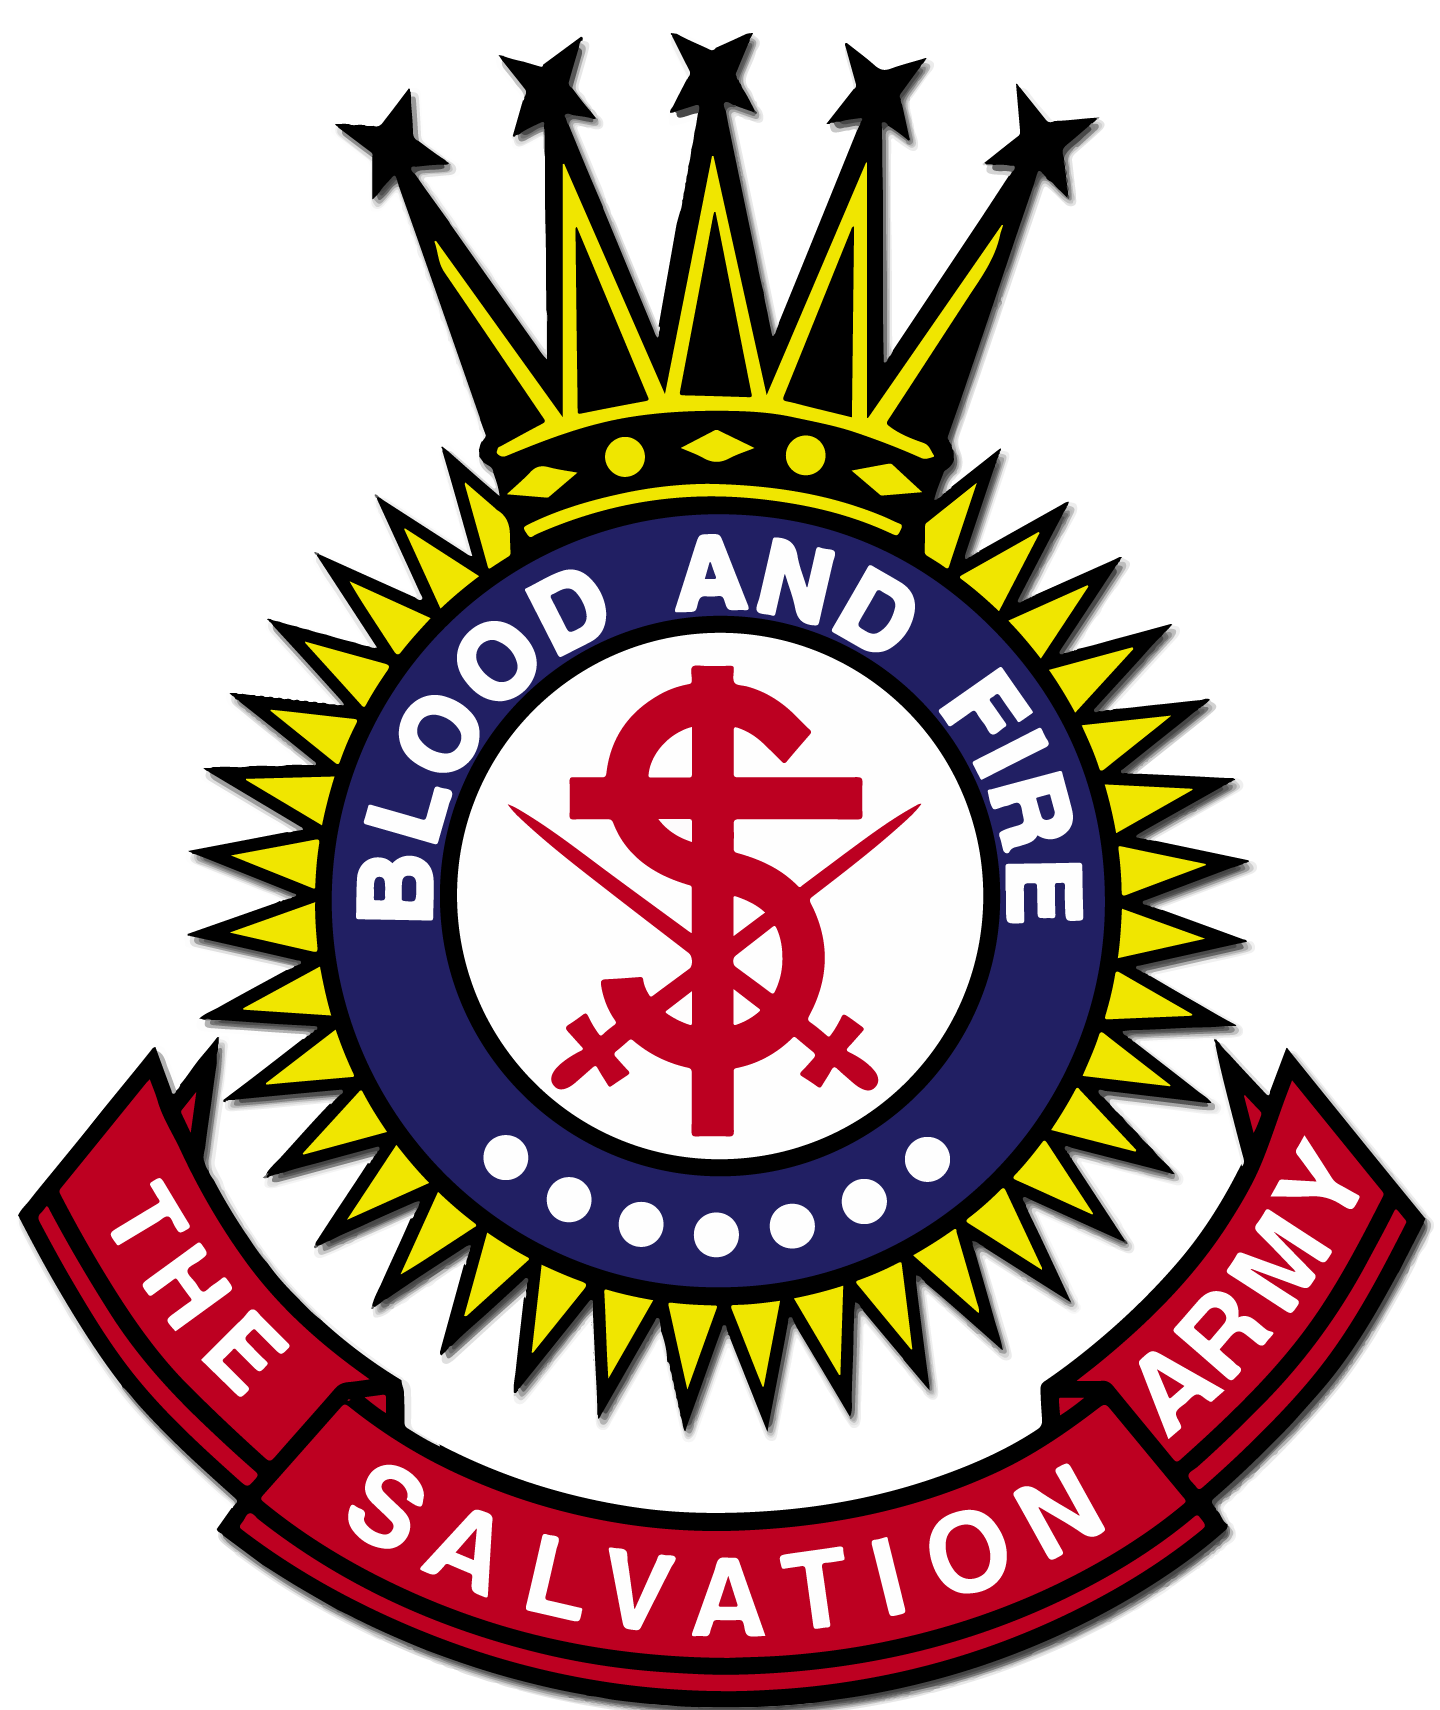 Of montgomery al contact. Salvation army crest png clip art library download